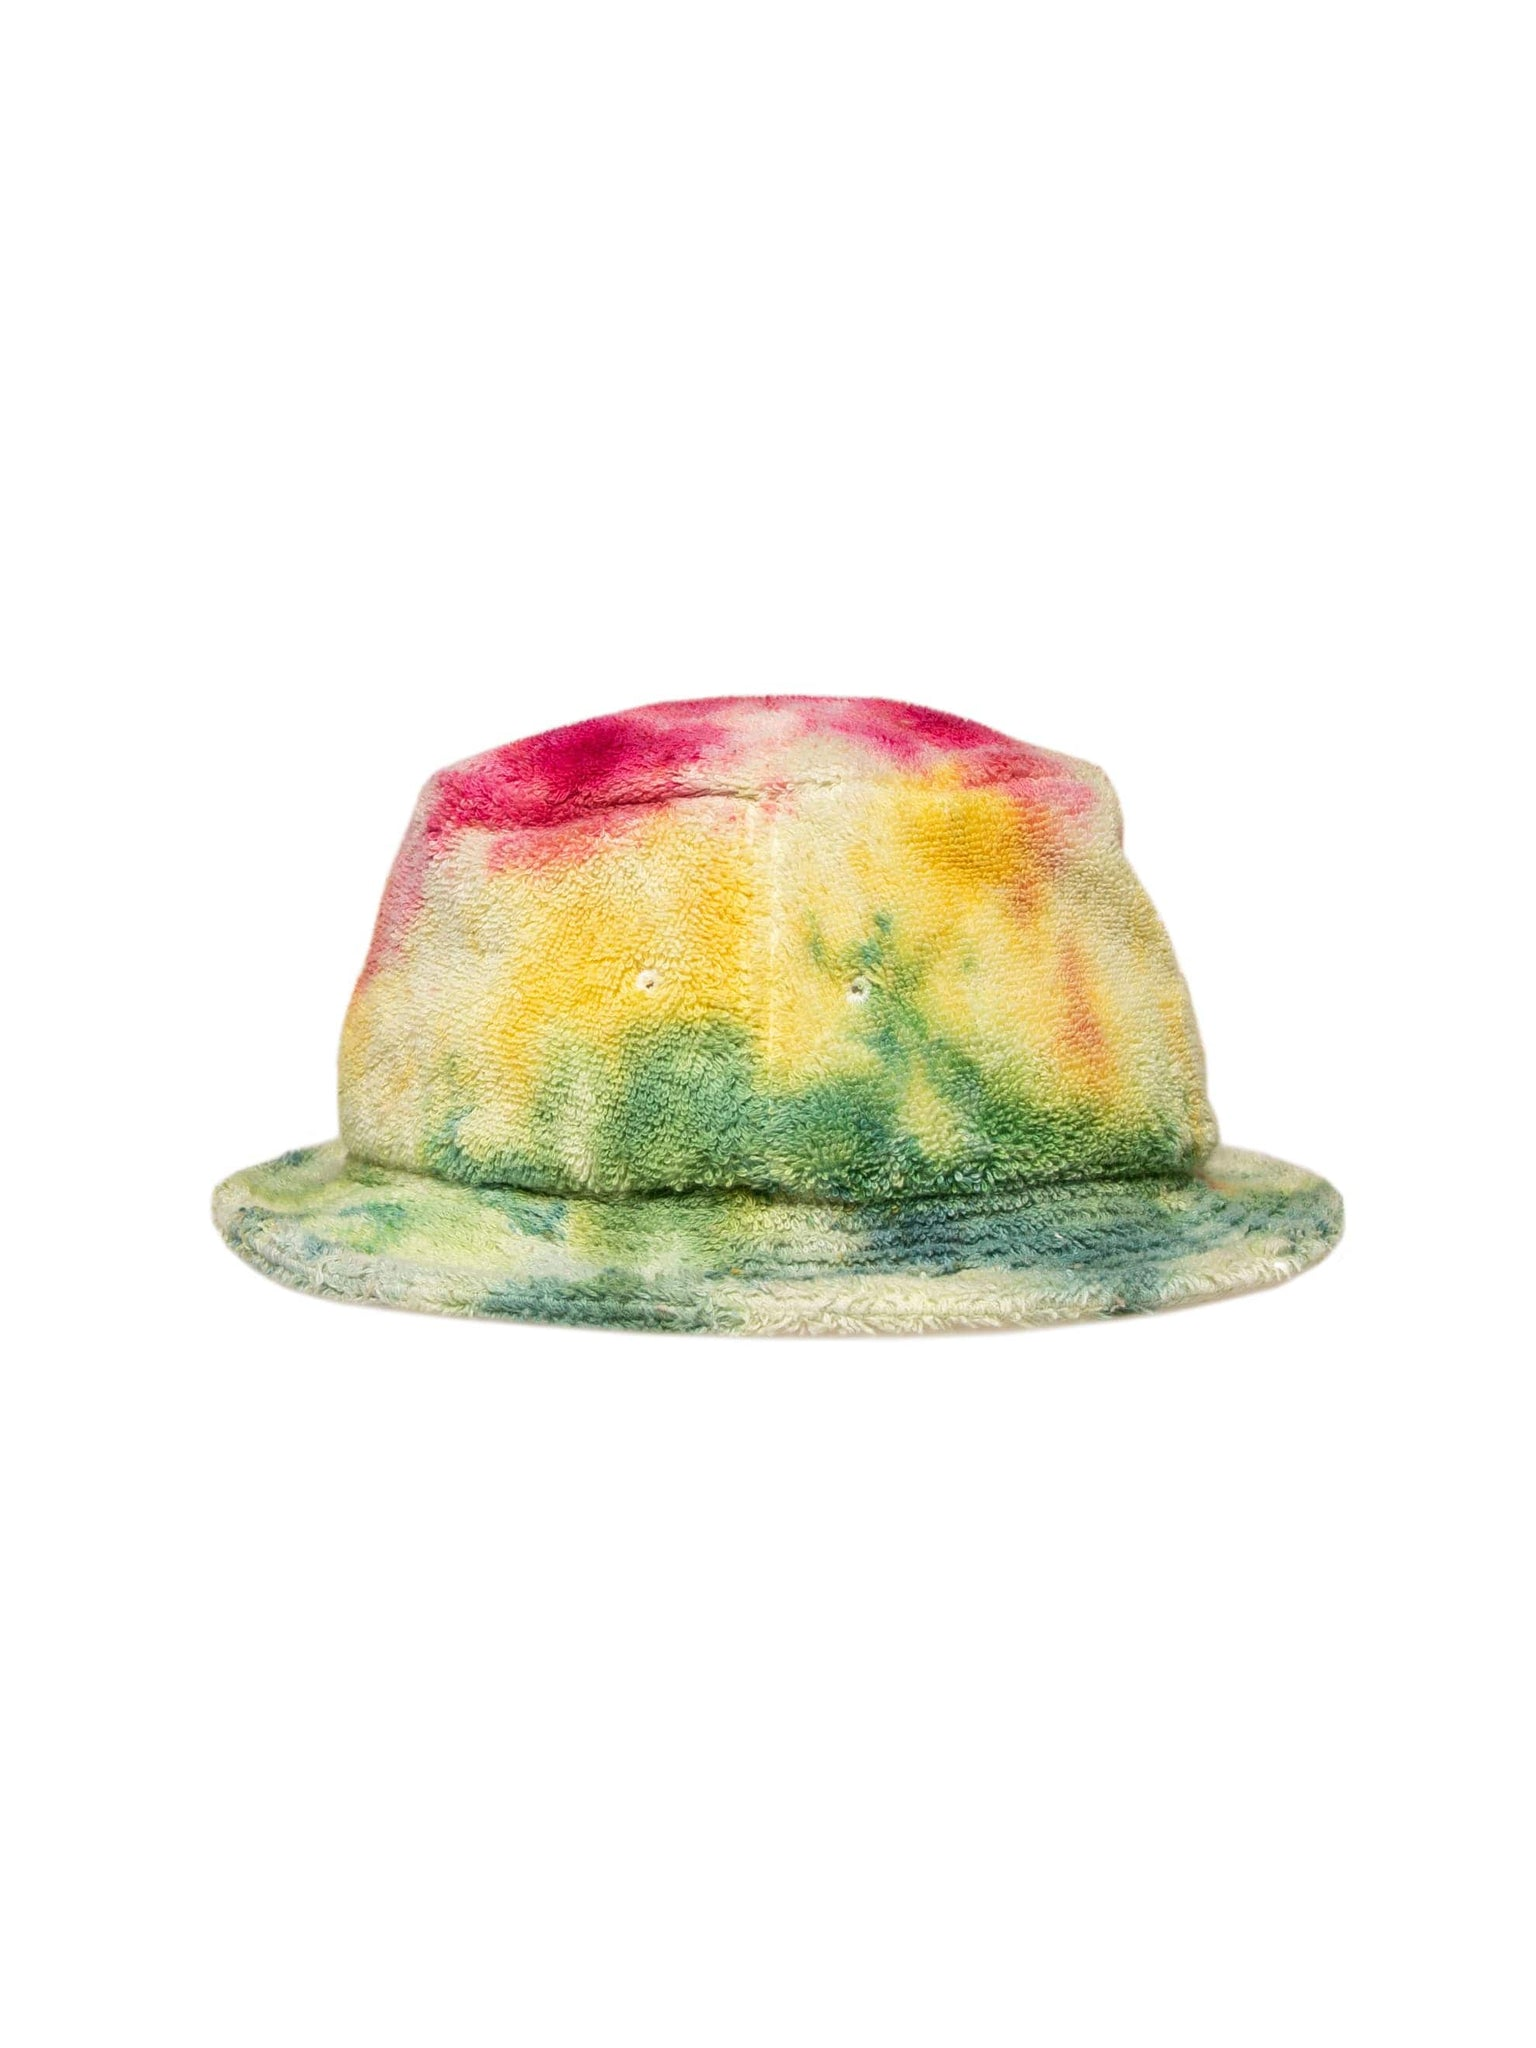 Camp High Red/Green Icee Dye Small Circle Too Bucket Hat